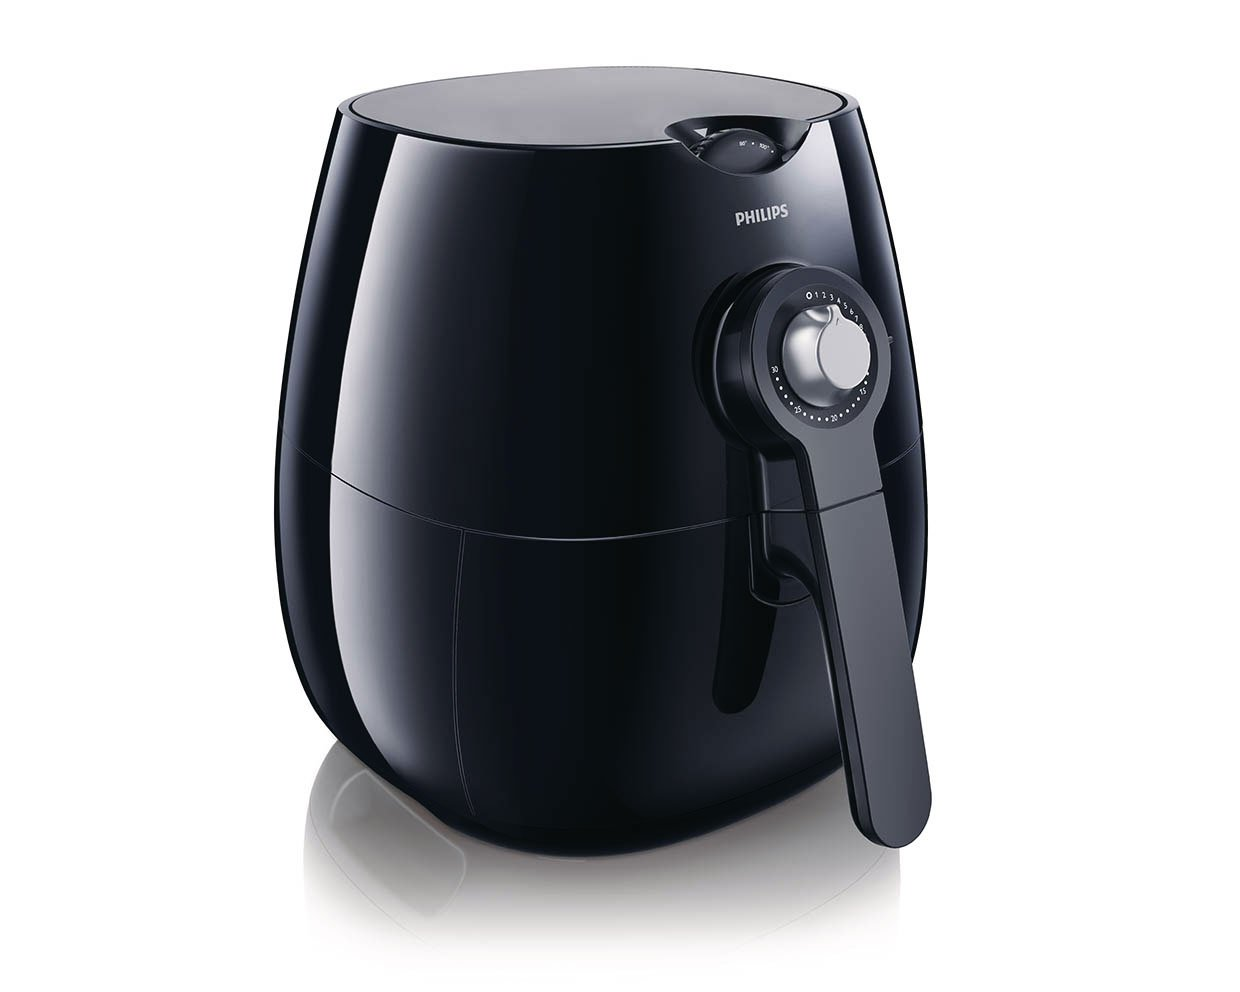 Philips-HD9220-26-air-fryer